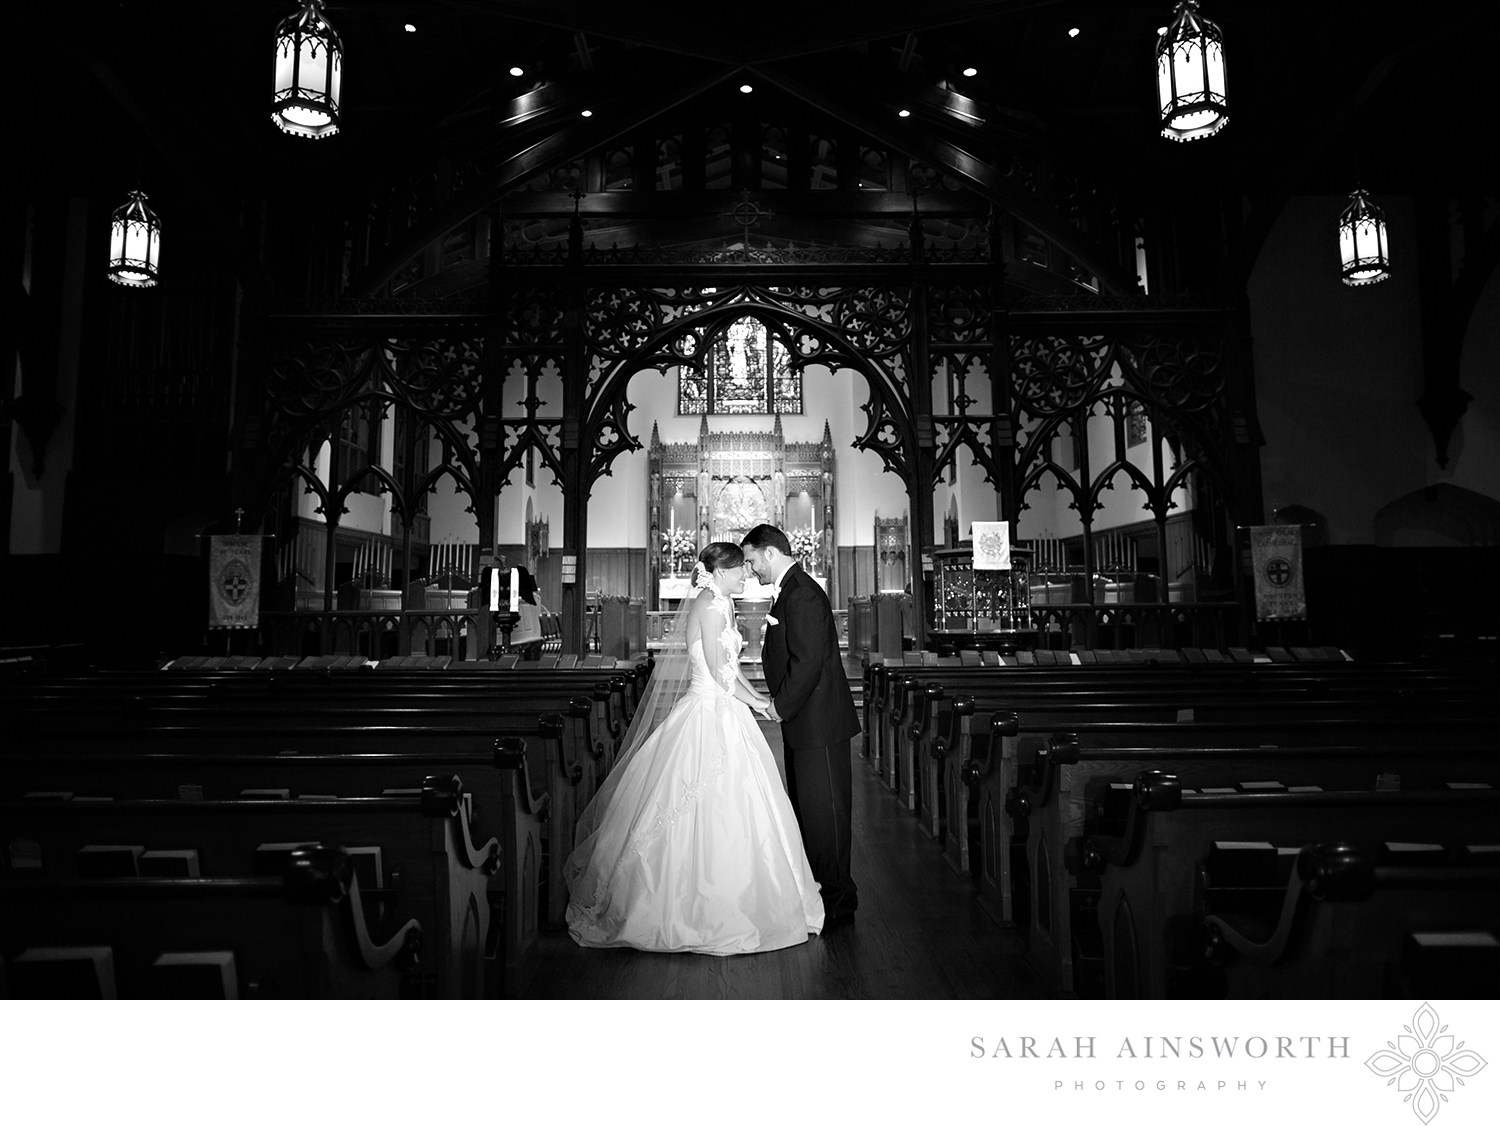 33_christ-church-cathedral-downtown-houston-churches-houston-wedding-cathedrals-best-churches-to-get-married-houston_01.jpg